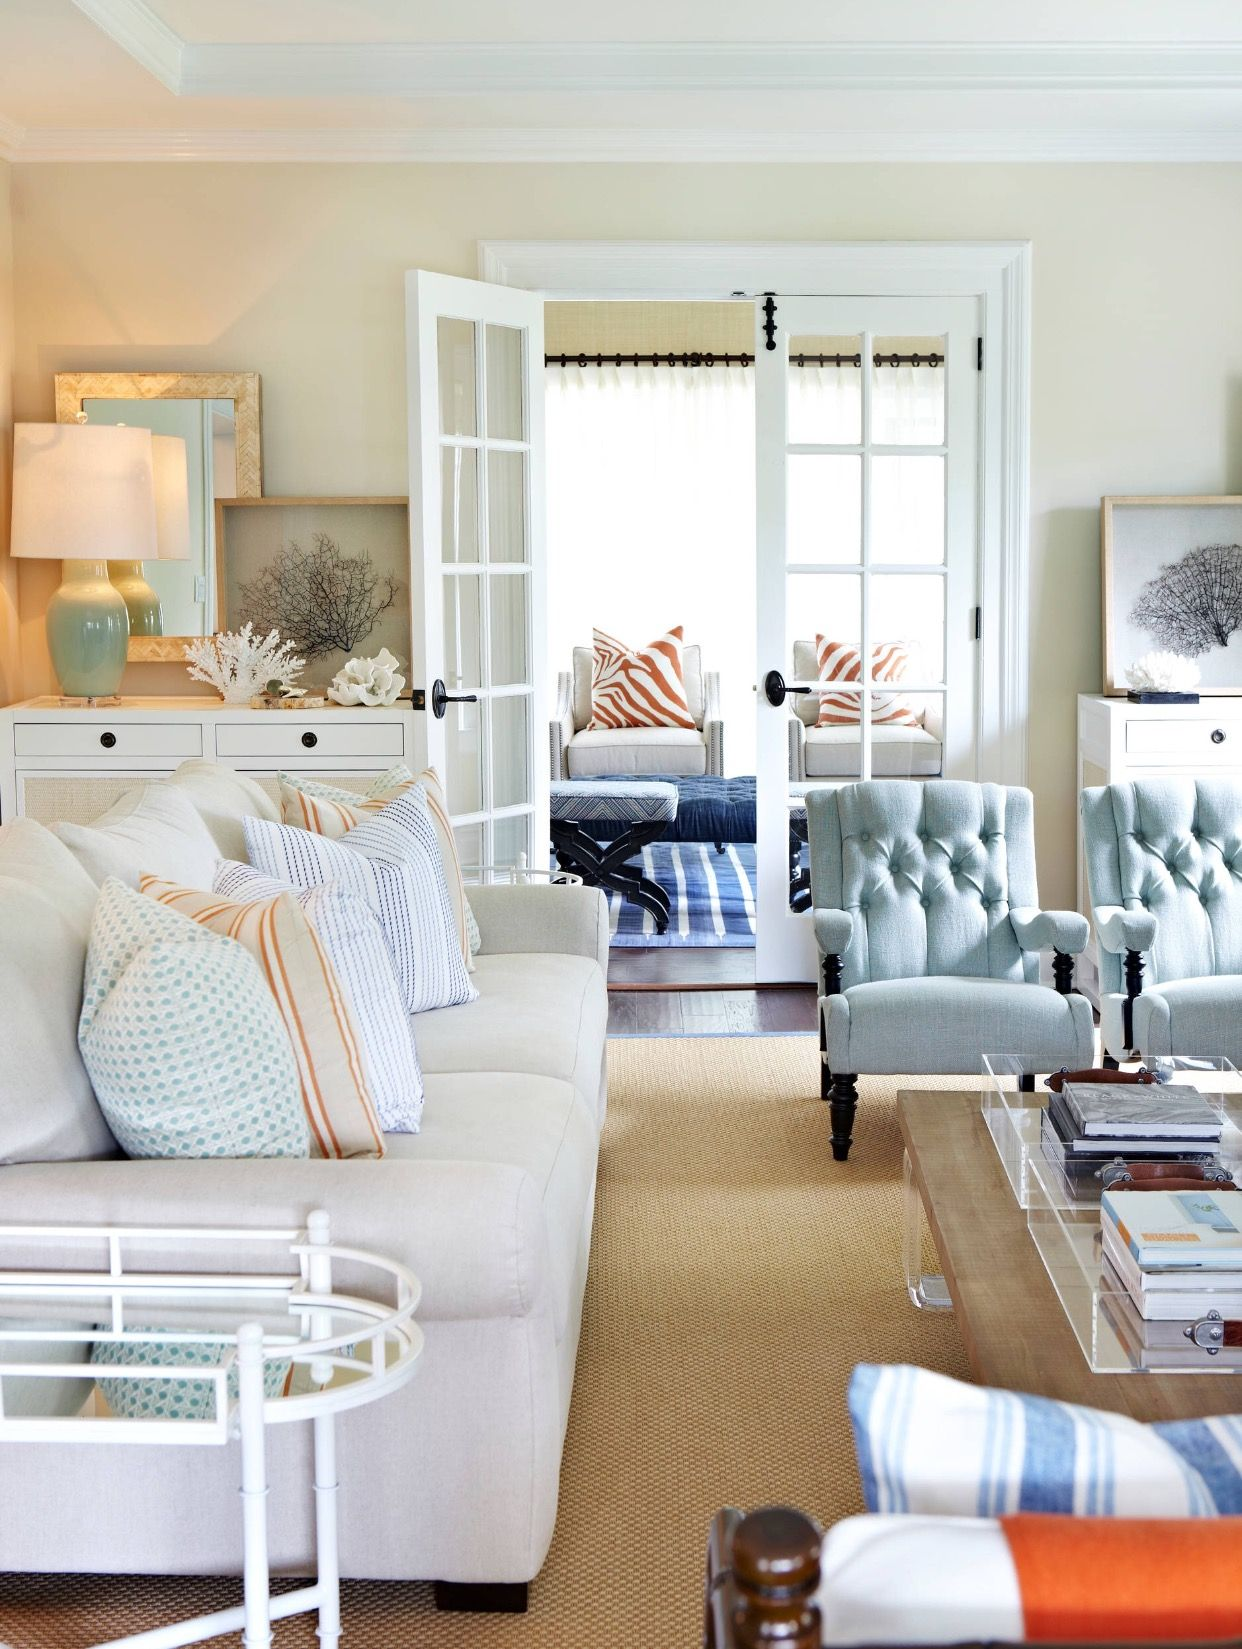 Open Concept Coastal Living and Dining Room with sea fan art